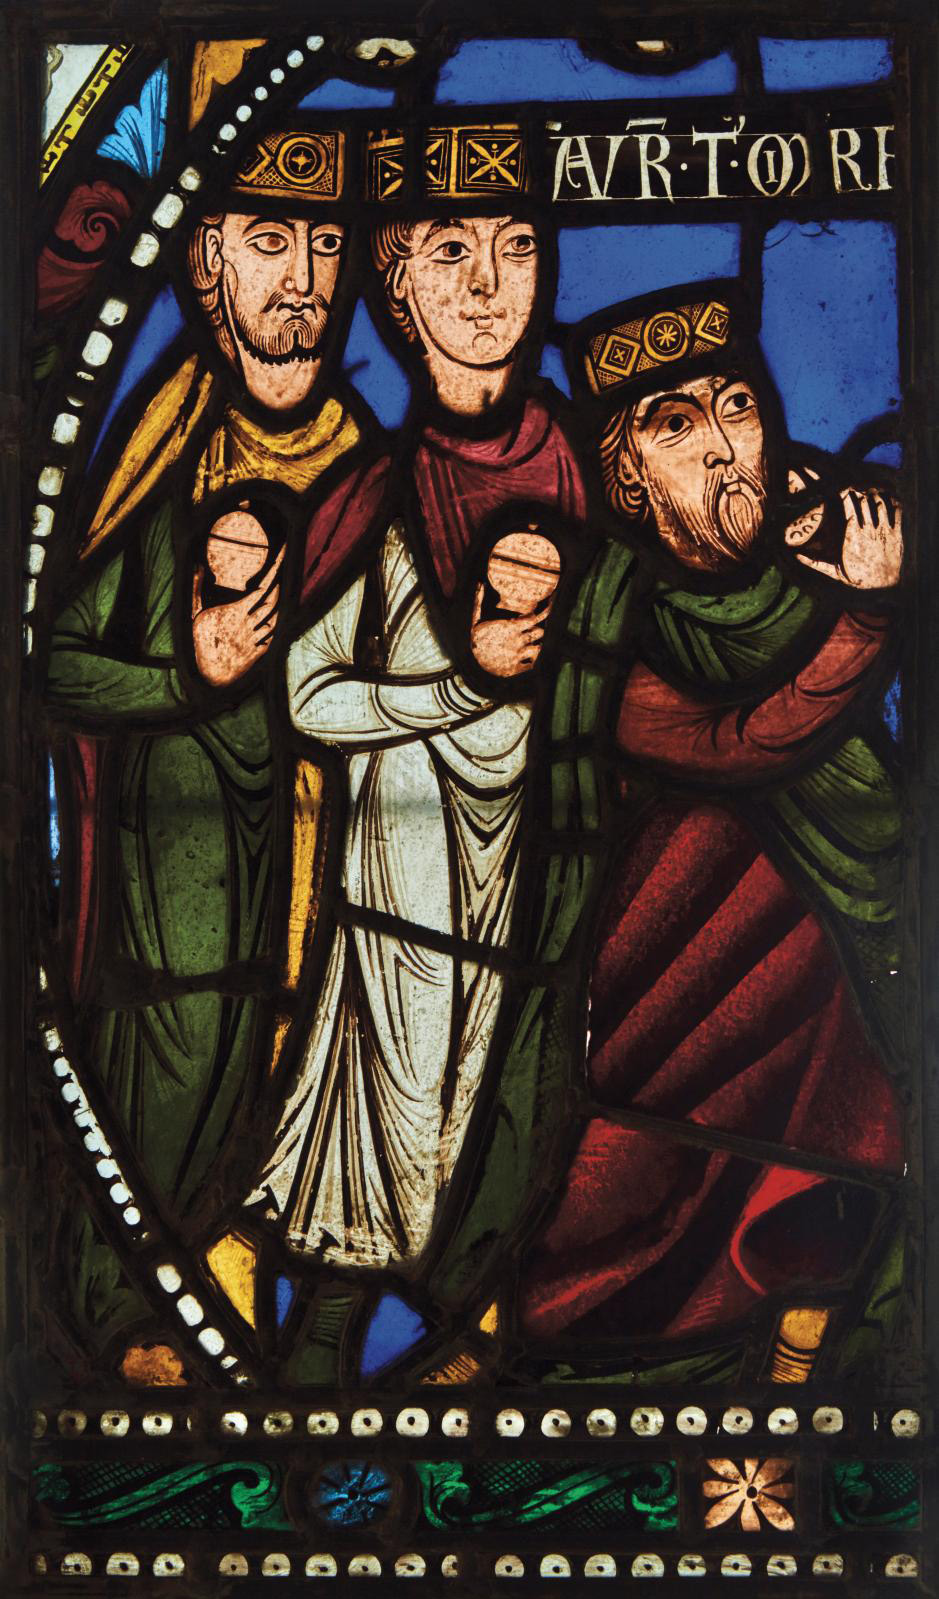 France, c. 1150. L'Adoration des Mages (The Adoration of the Magi), stained glass, 44.7 x 27.9 cm (17.6 x 10.99 in).Photo Pierre Bergé & A